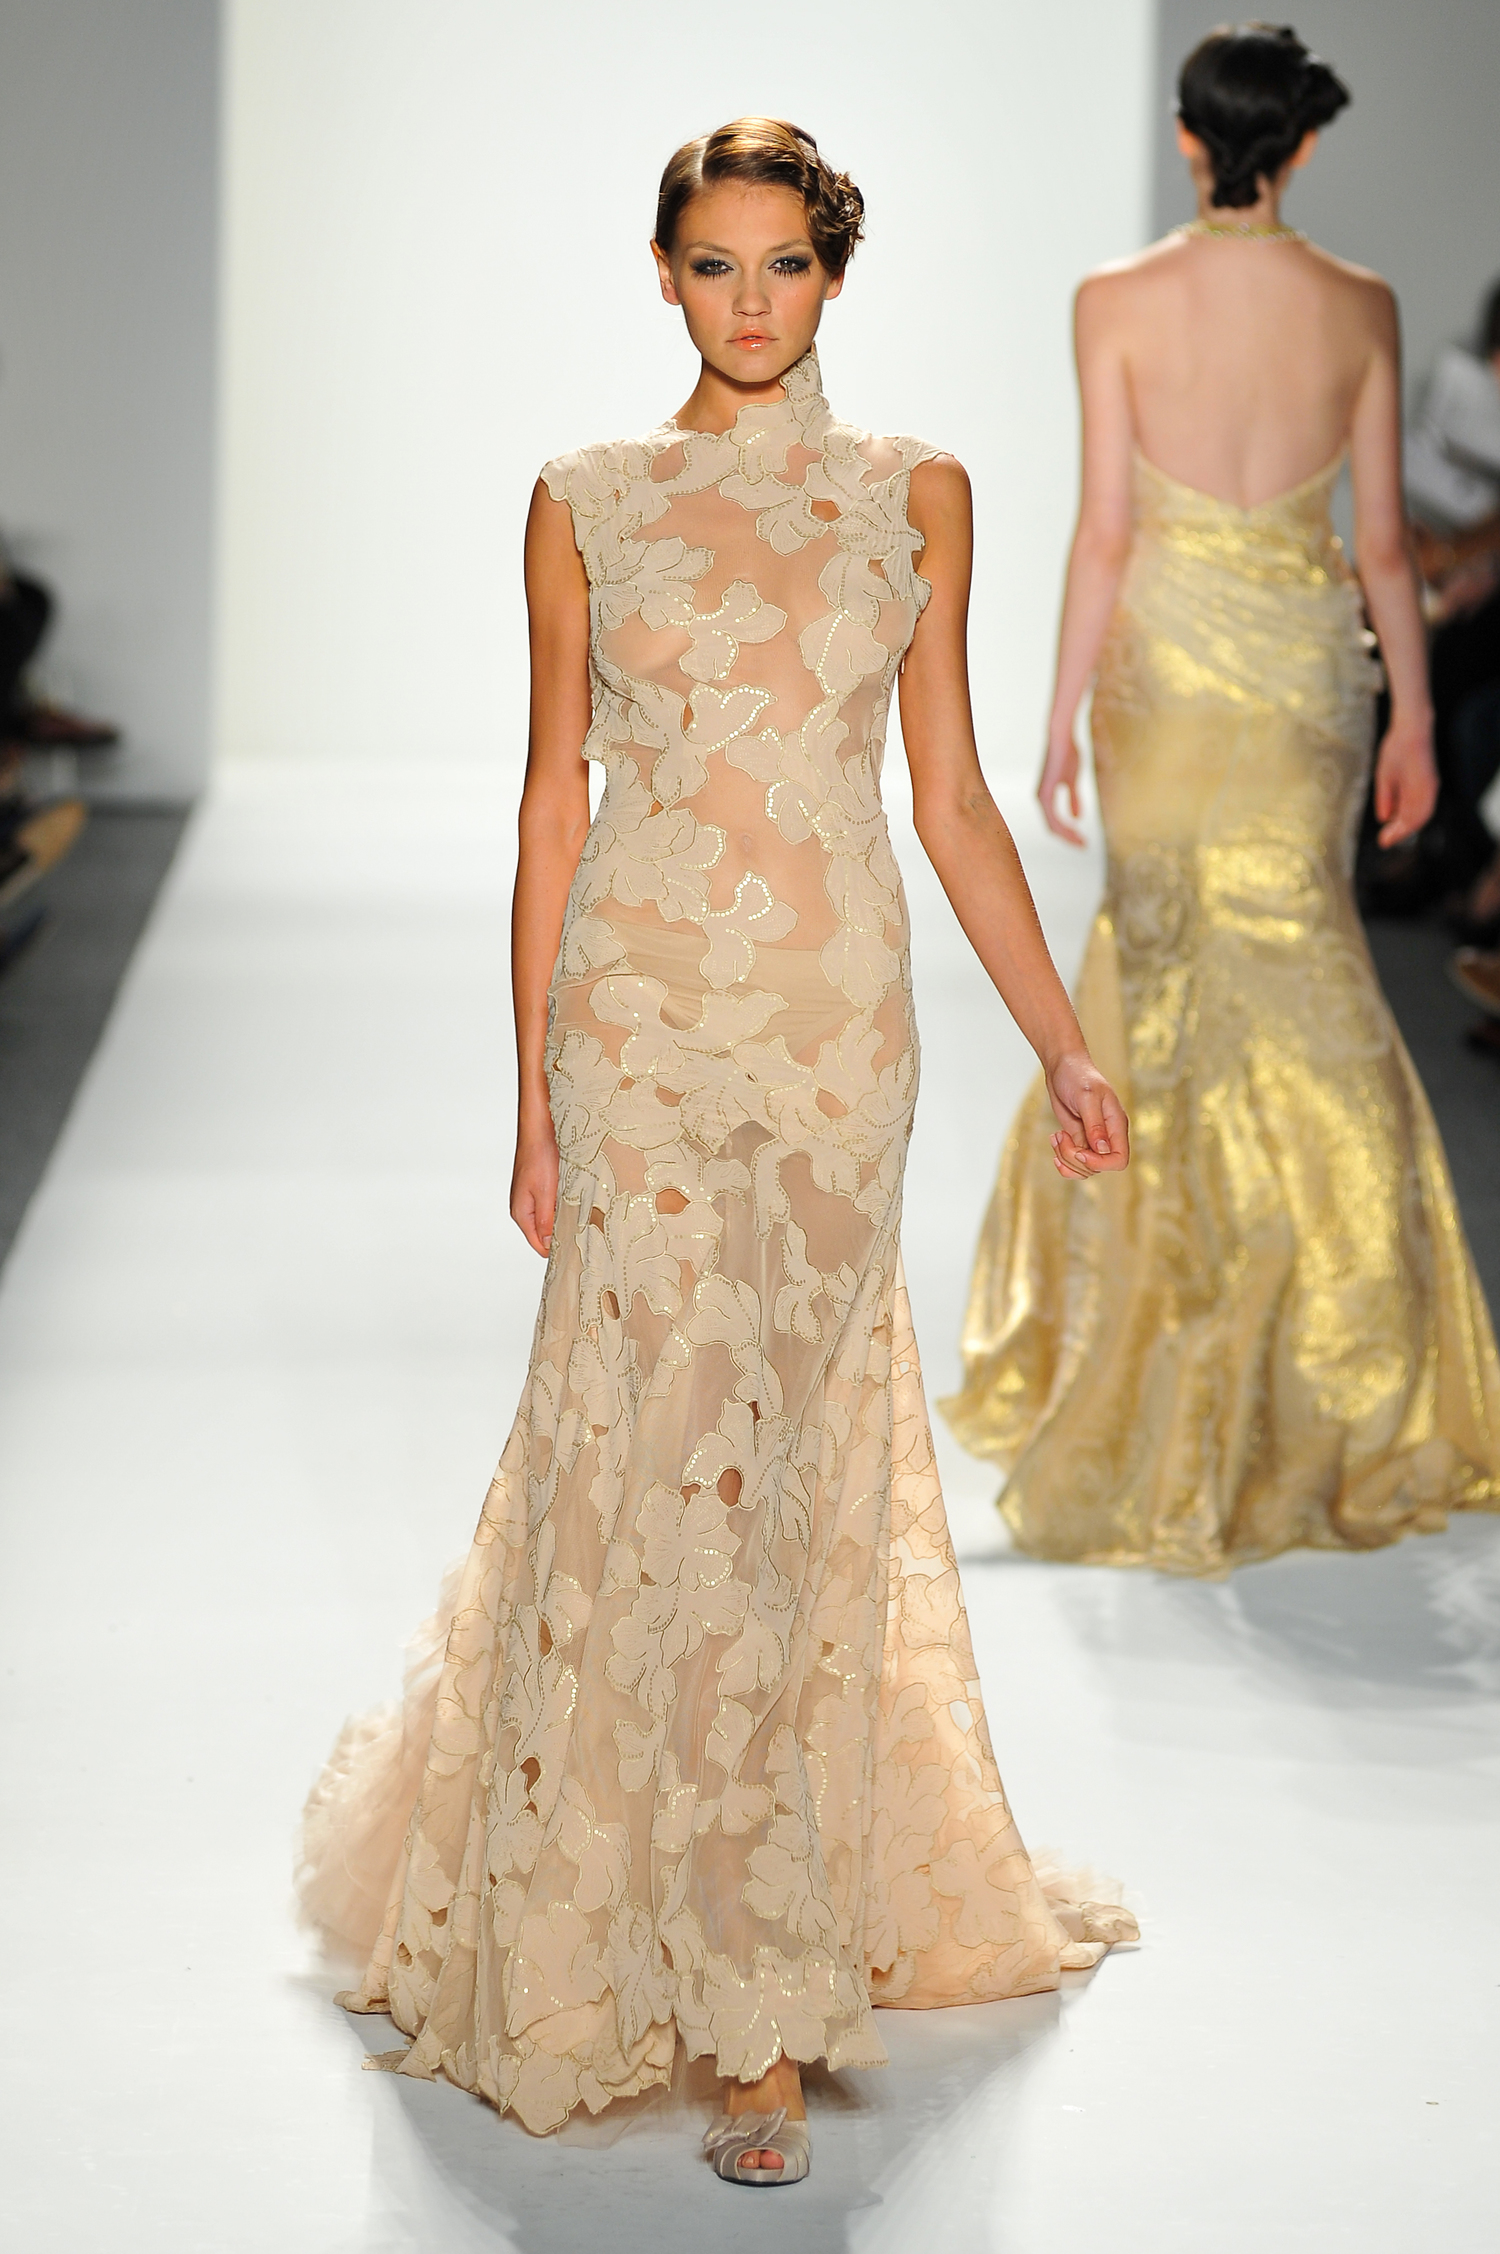 Floral and Cream Gown with Lace Trim — Globa Moda